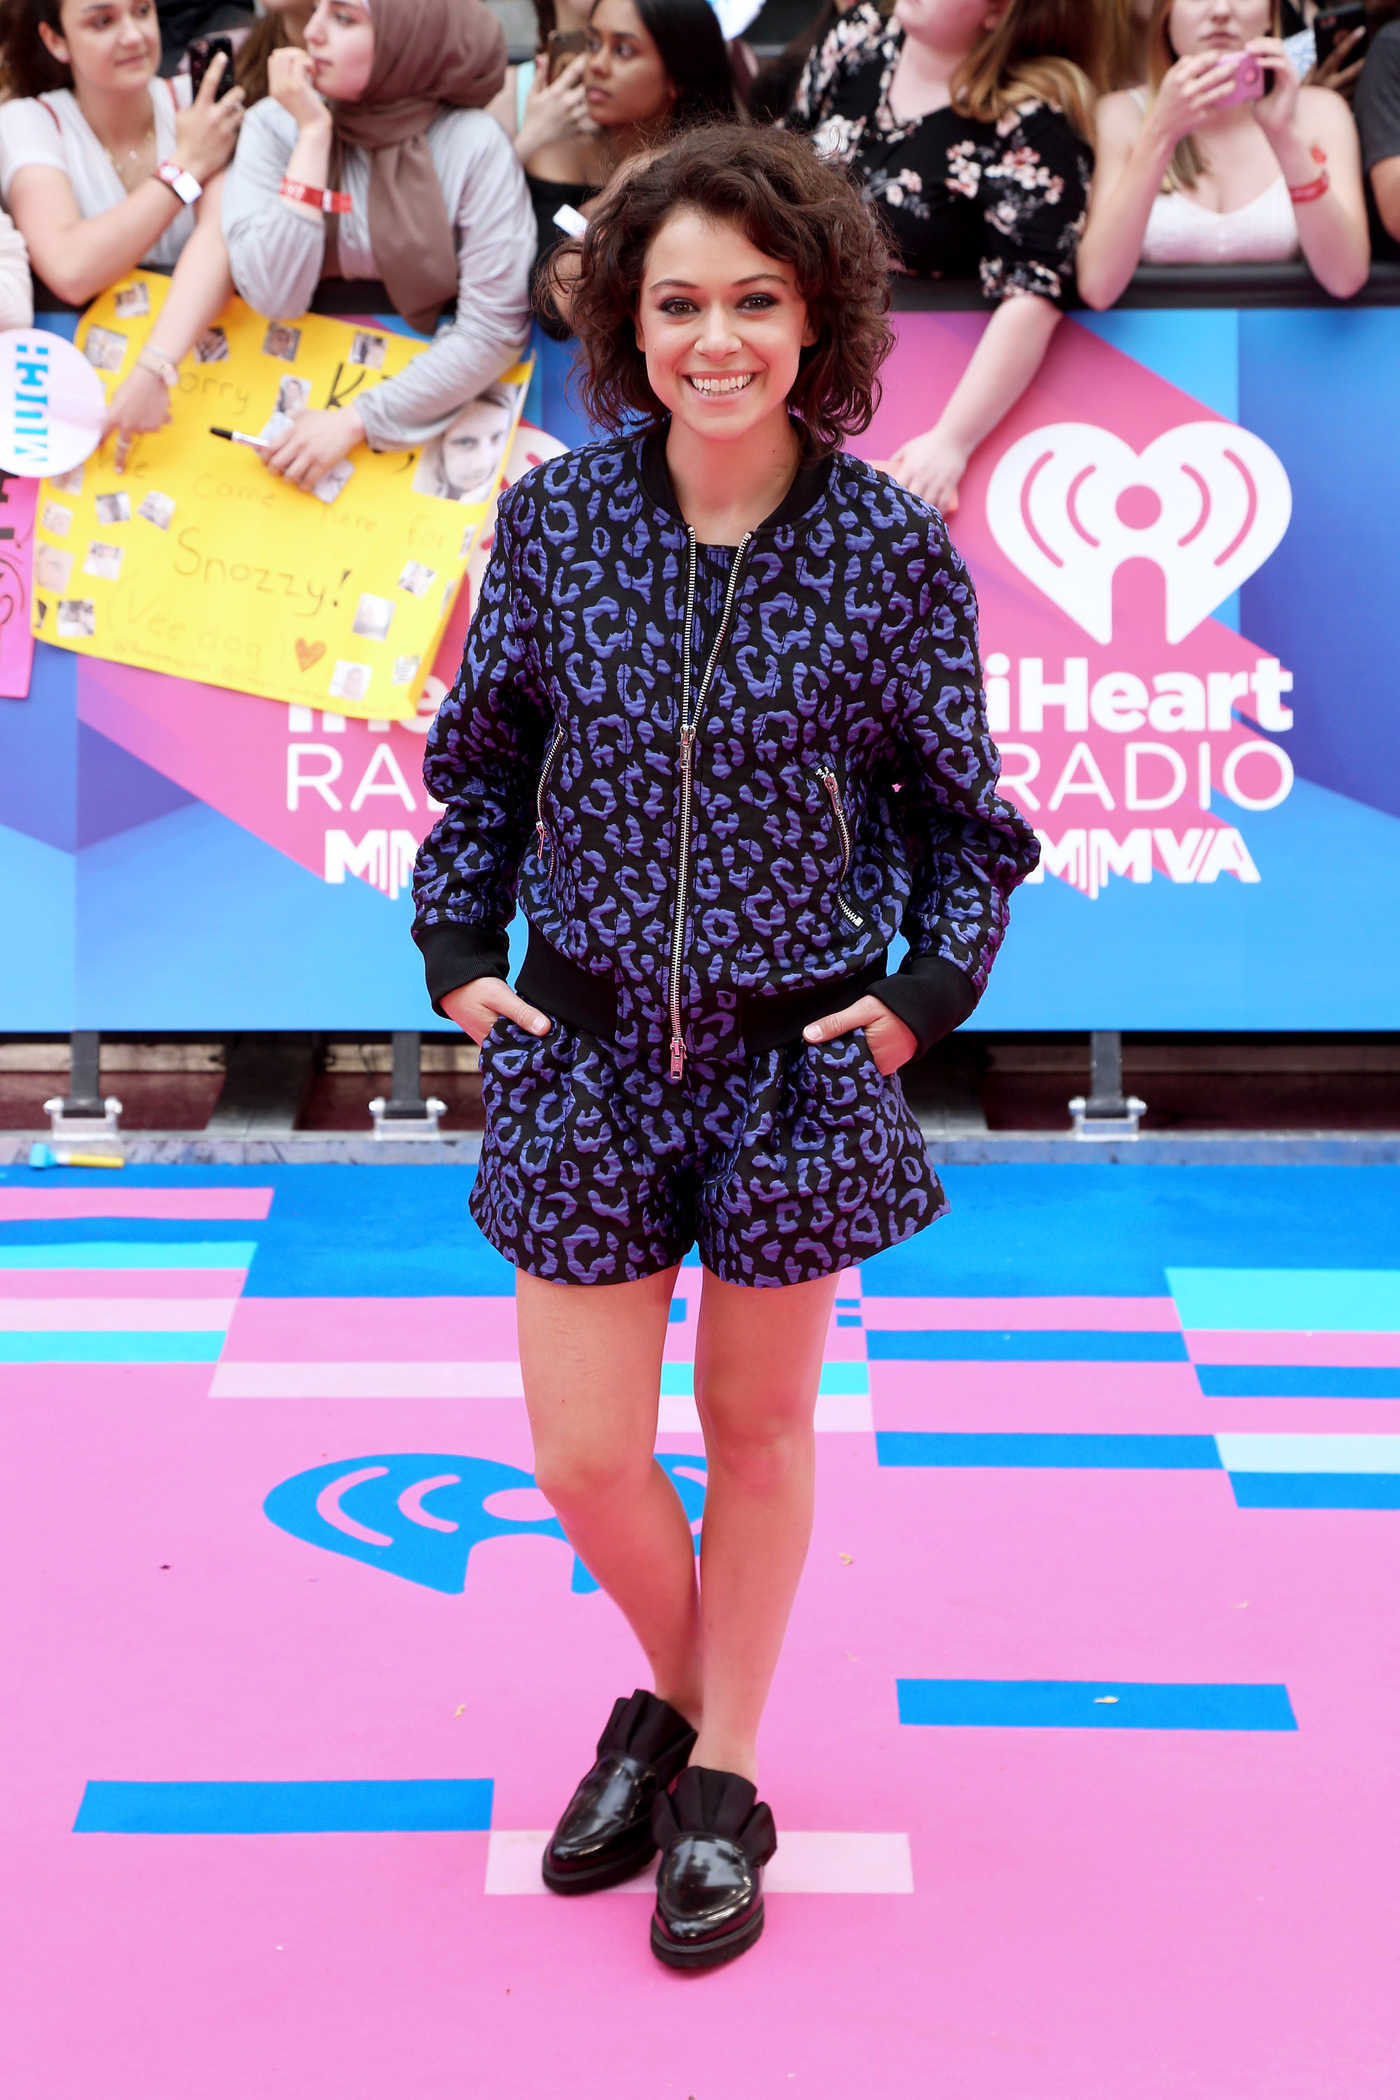 Tatiana Maslany Arrives at the iHeartRadio MuchMusic Video Awards in Toronto 06/18/2017